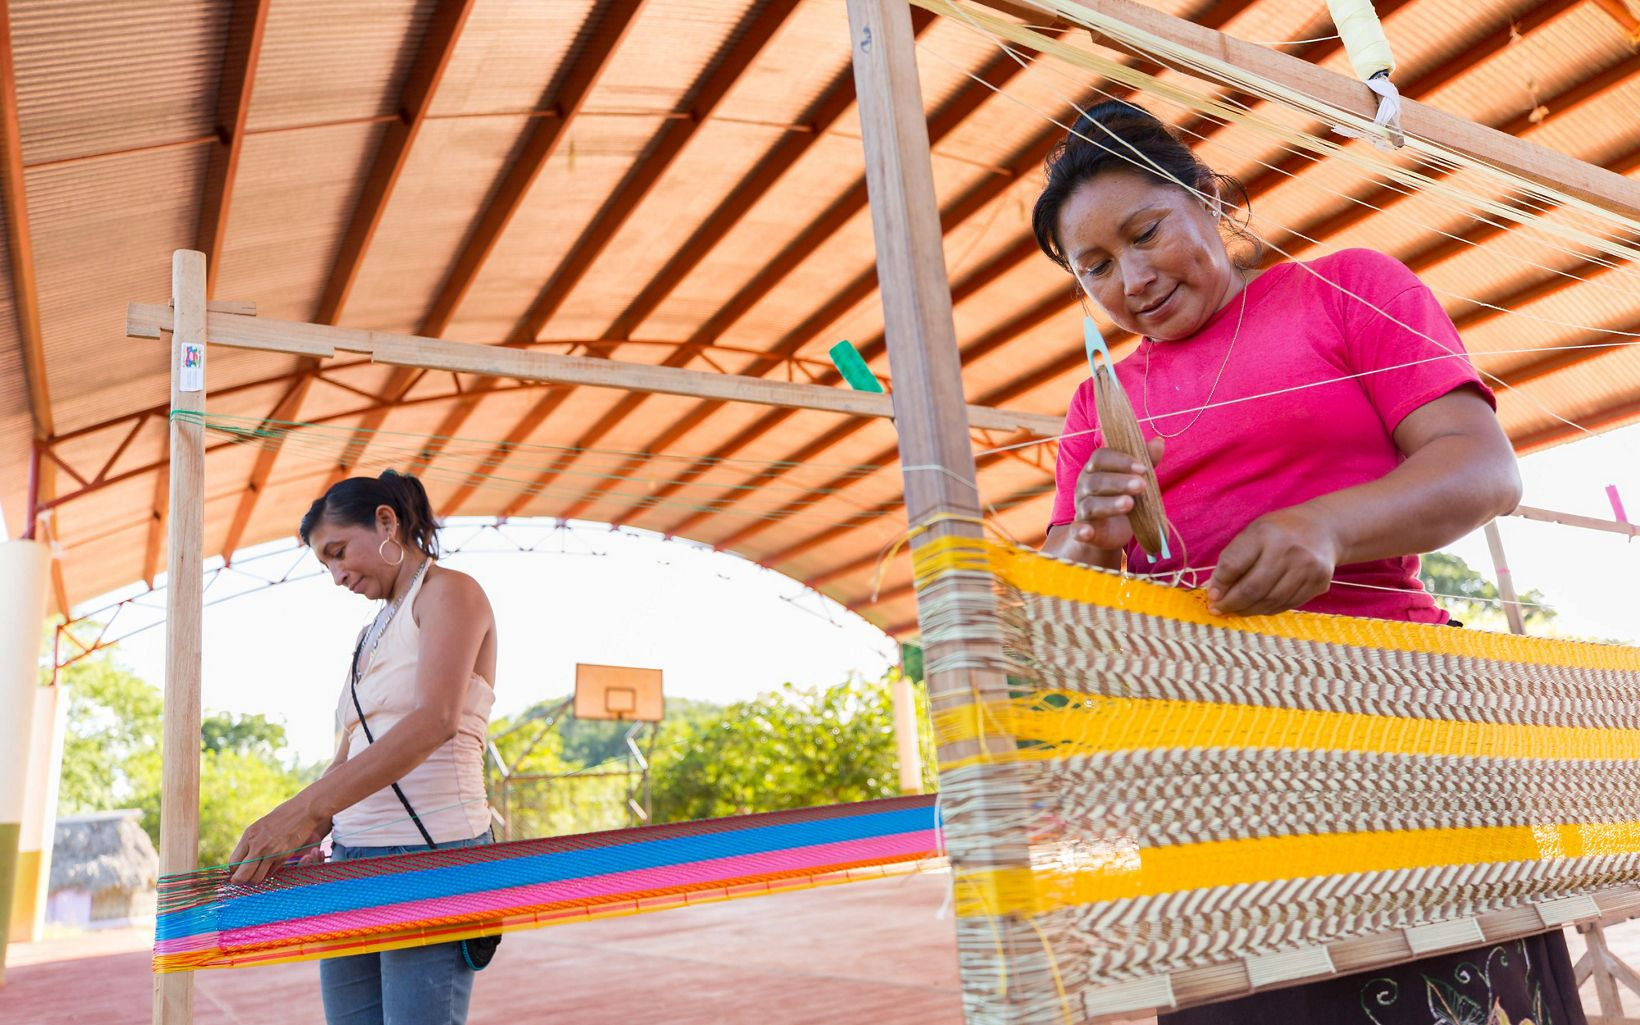 Women from the San Agustin ejido cooperative weaving traditional Mayan hammocks to sell in Merida near San Agustin, Yucatan.